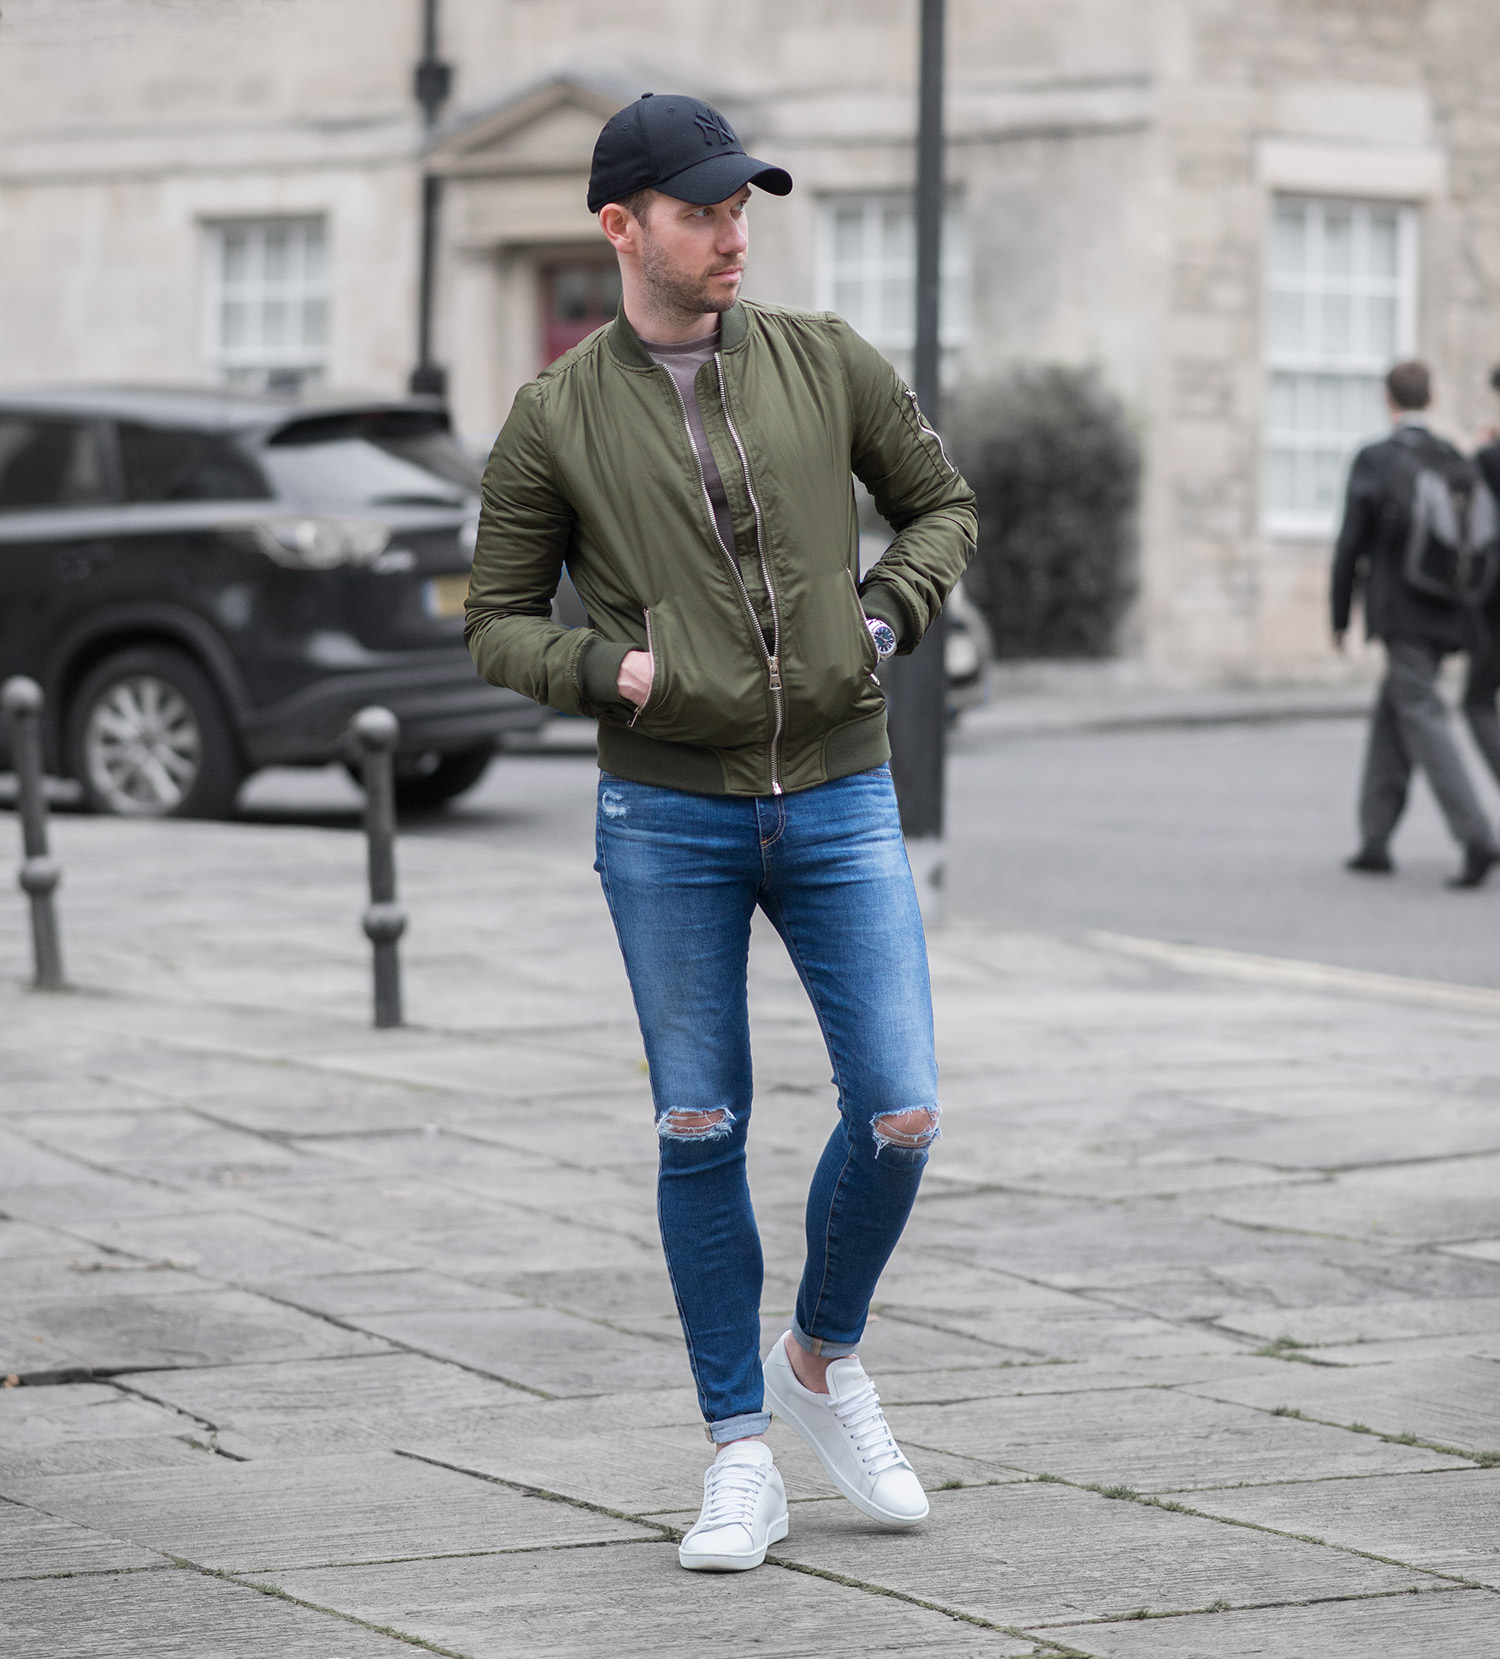 Another Topshop Green Bomber Jacket Outfit | Your Average Guy